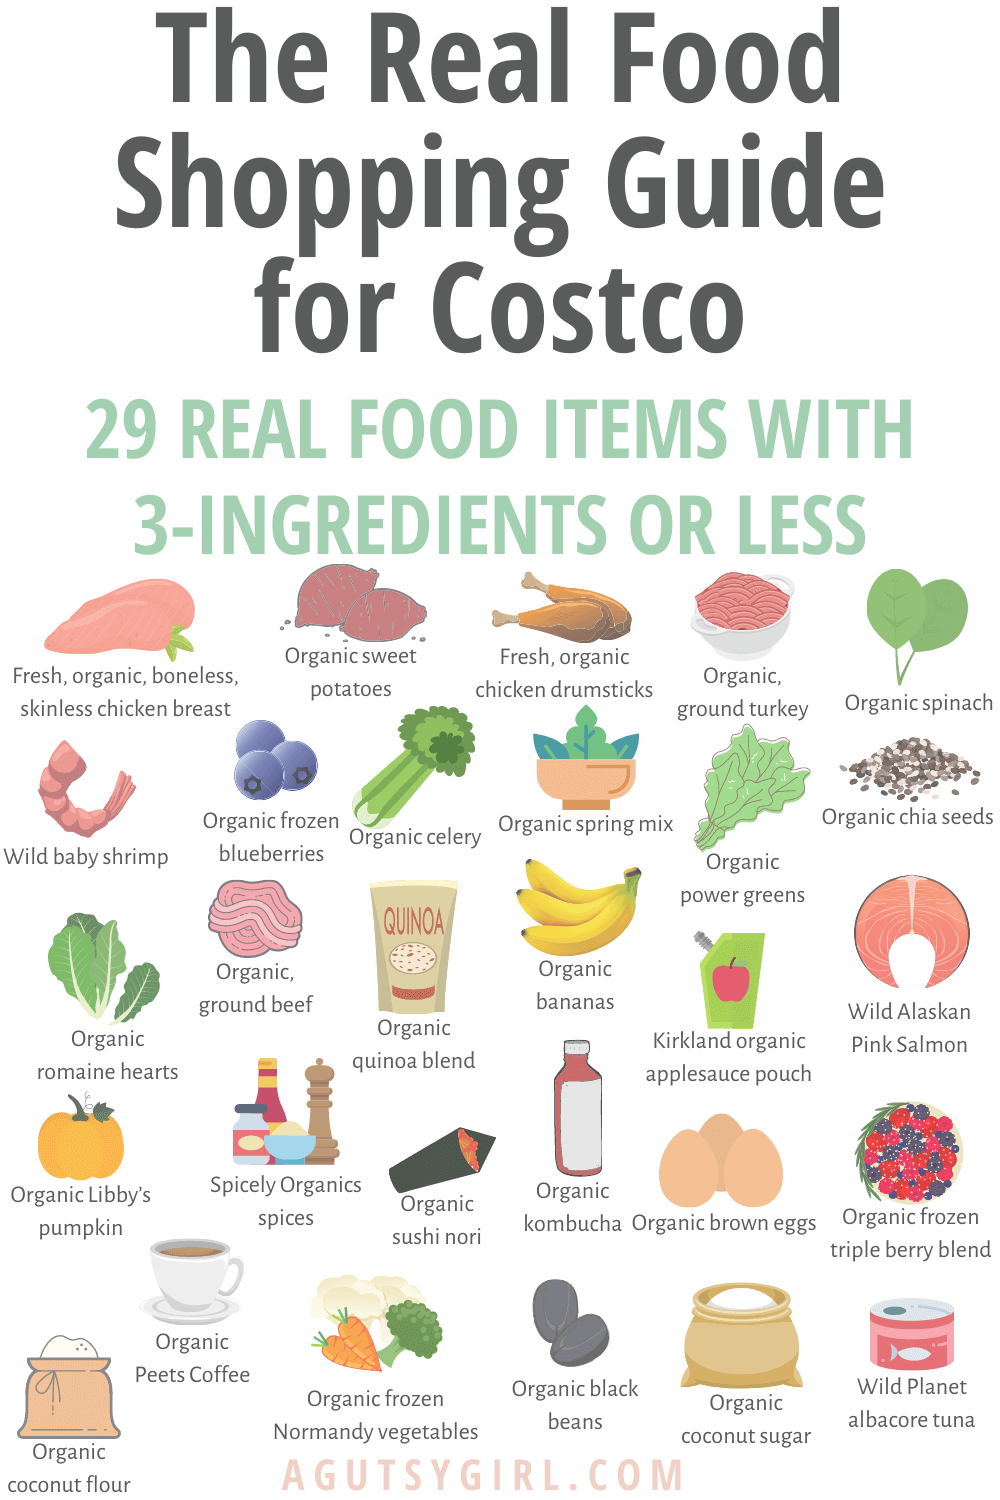 The Real Food Shopping Guide for Costco agutsygirl.com 3-ingredients or less #costco #guthealth #costcofinds #3ingredients